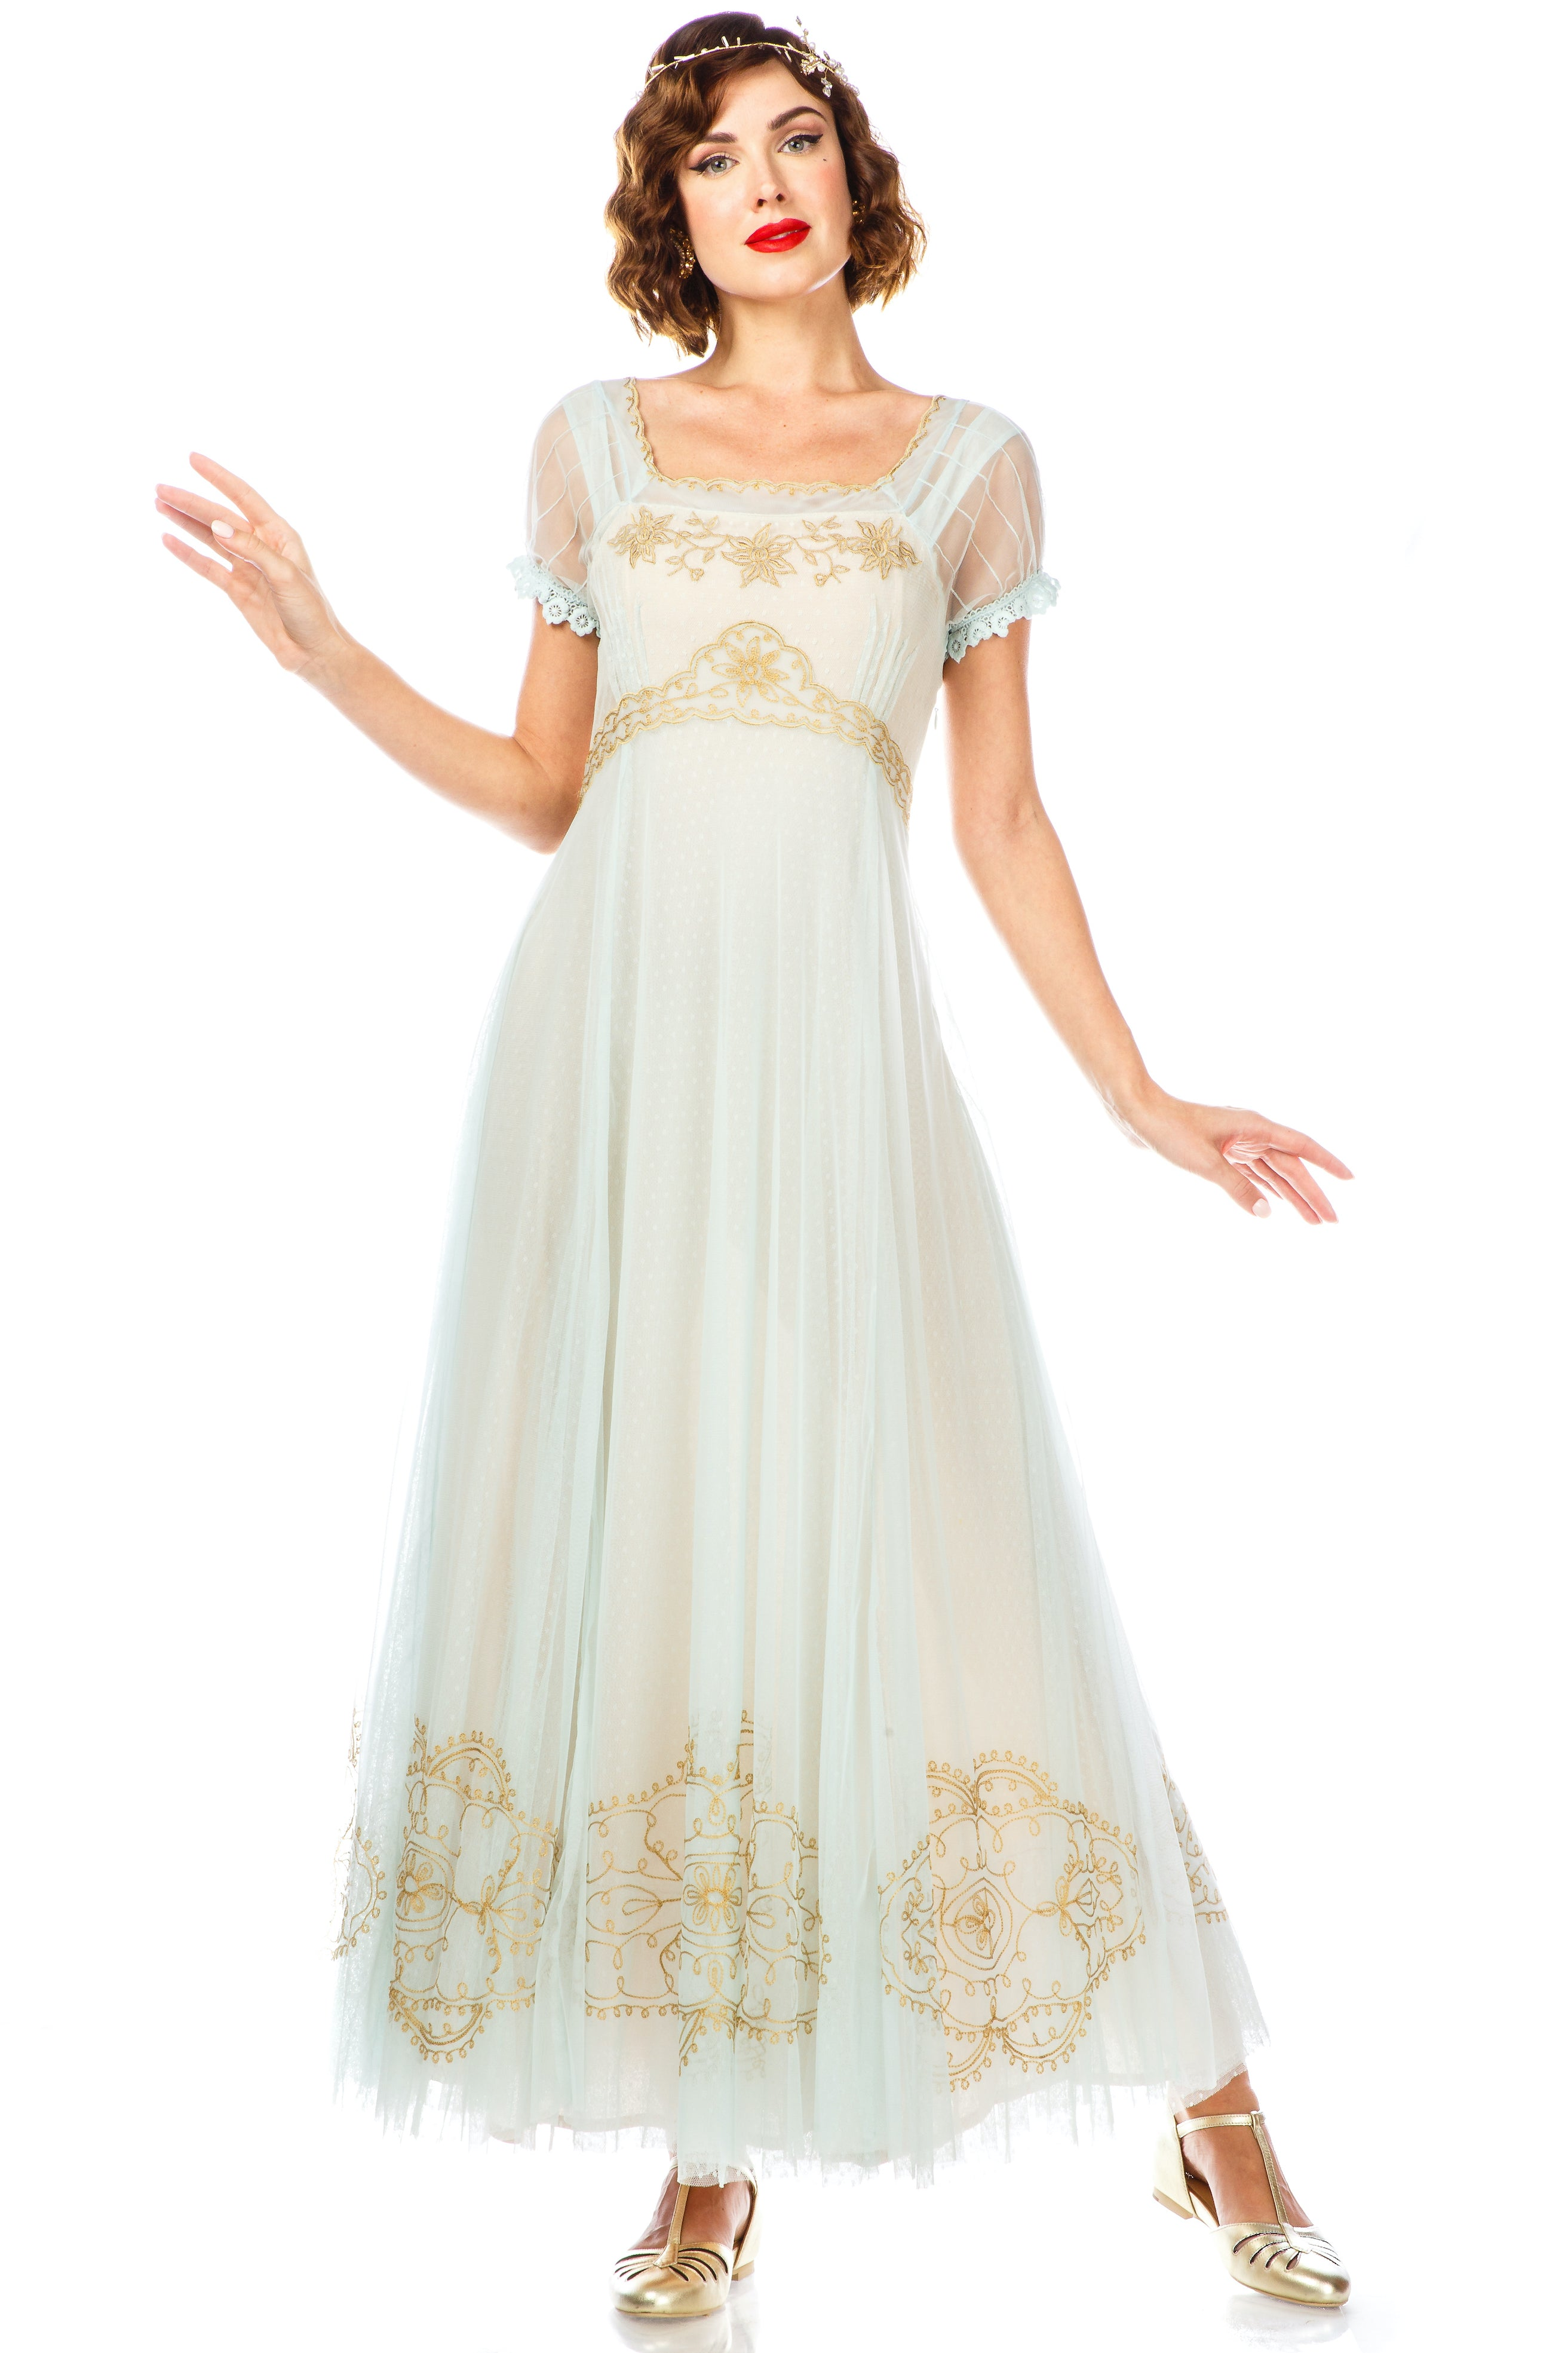 Edwardian Evening Gowns , Ballgowns, Formal Dresses PARISIENNE VINTAGE ELEGANCE WEDDING GOWN IN NUDE MINT $396.00 AT vintagedancer.com